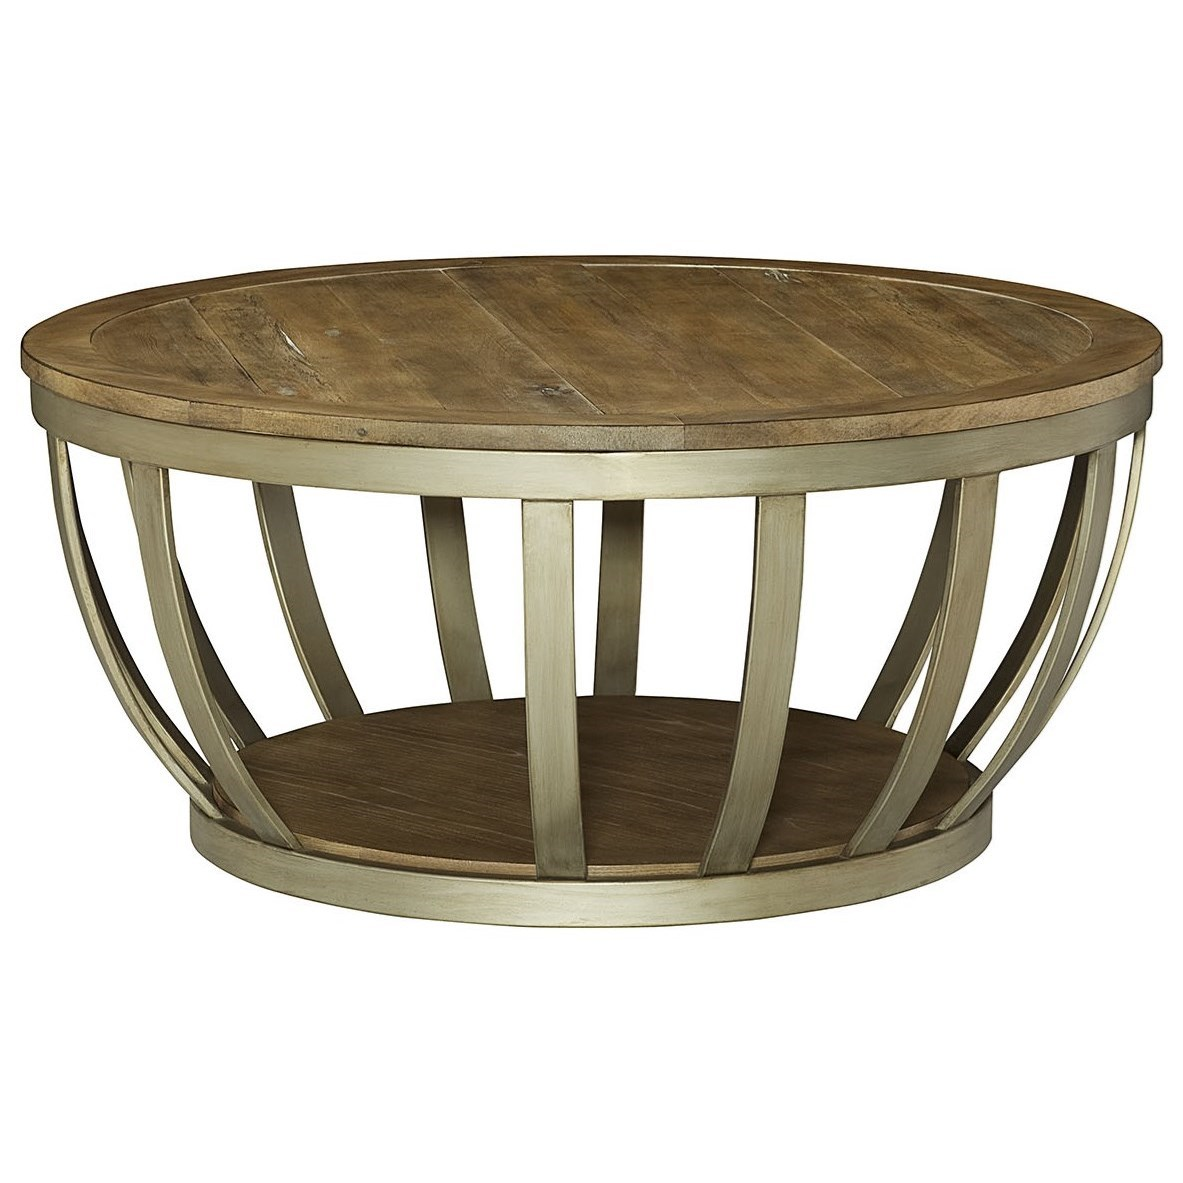 Modern Coffee Table Metal: Hammary Modern Theory Round Cocktail Table With Metal